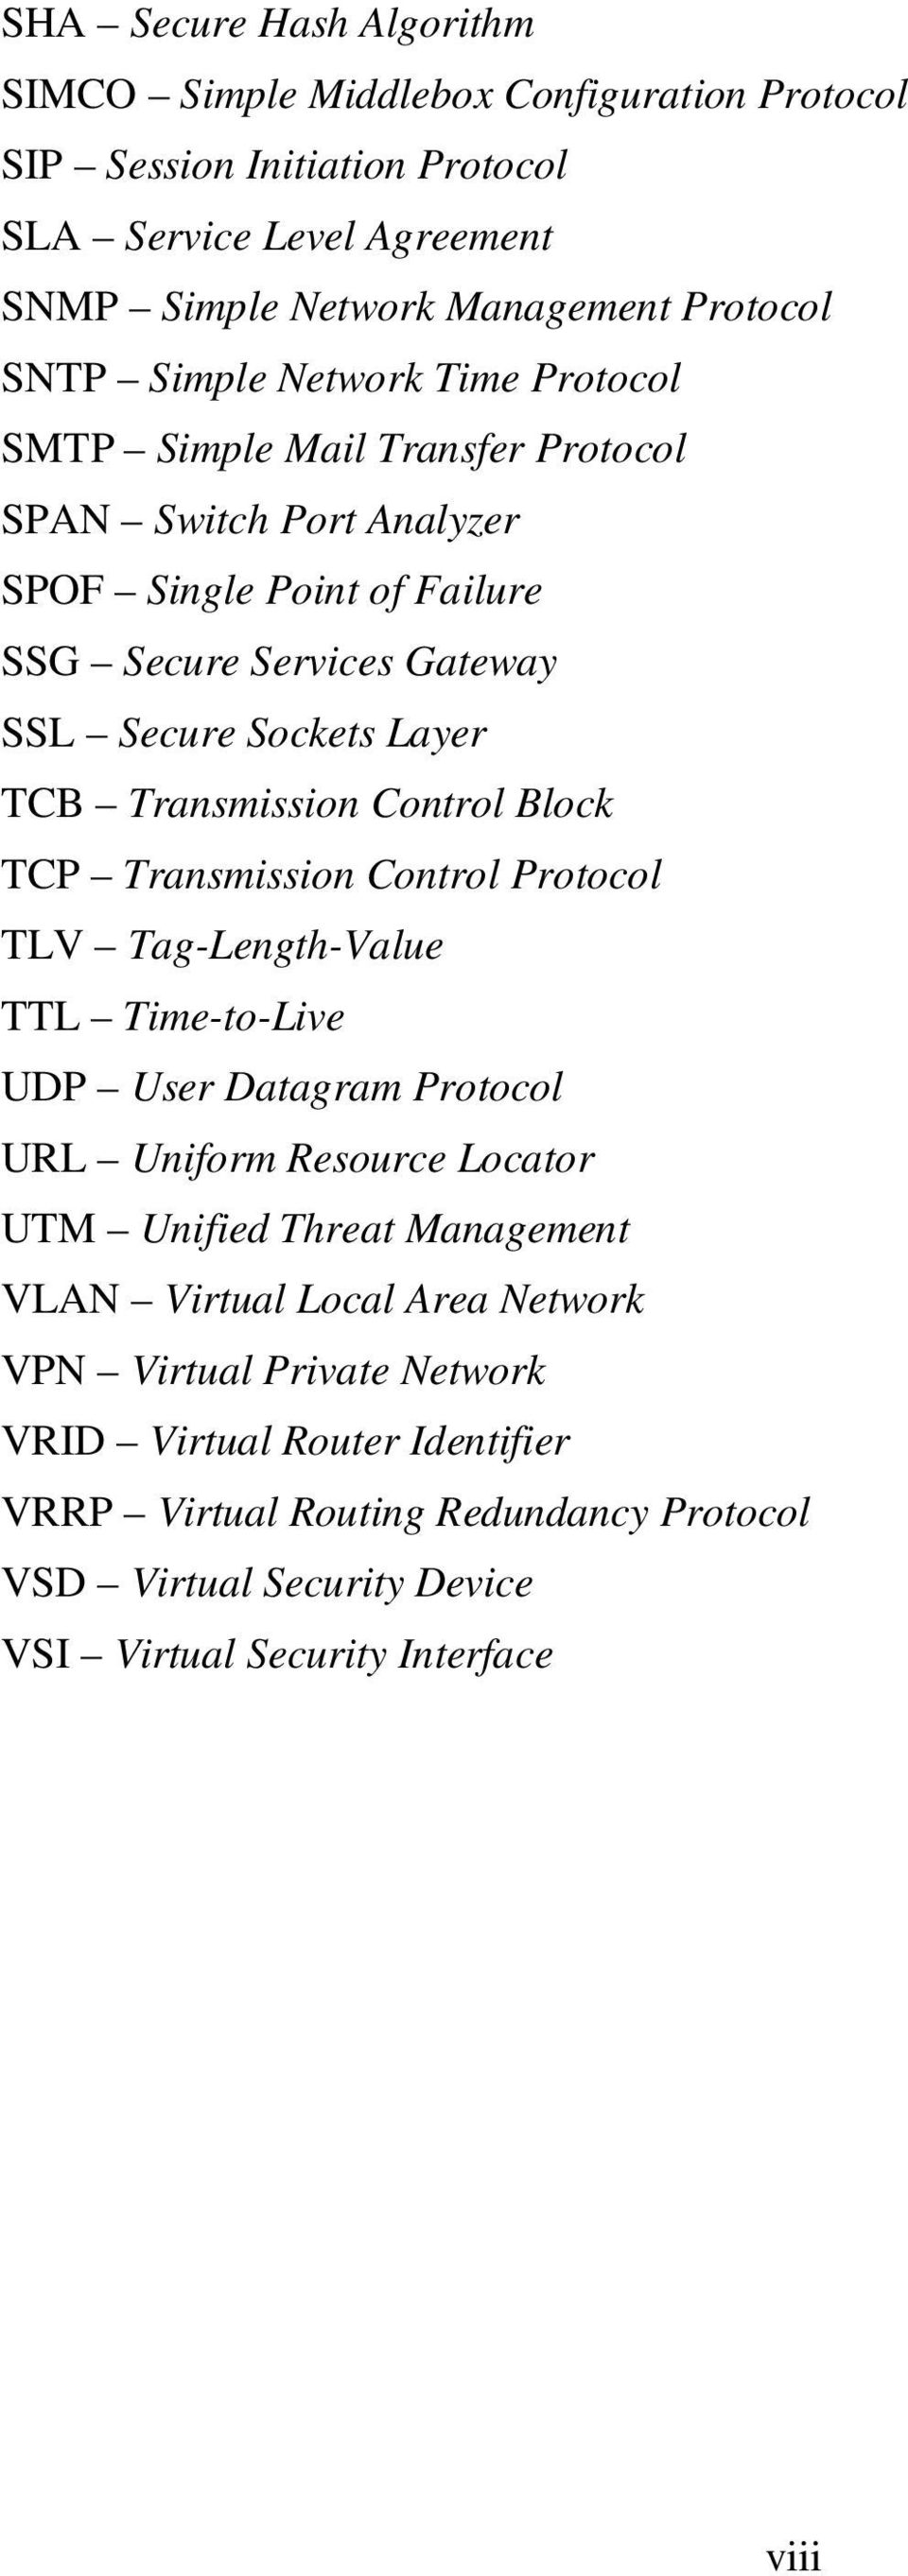 Control Block TCP Transmission Control Protocol TLV Tag-Length-Value TTL Time-to-Live UDP User Datagram Protocol URL Uniform Resource Locator UTM Unified Threat Management VLAN